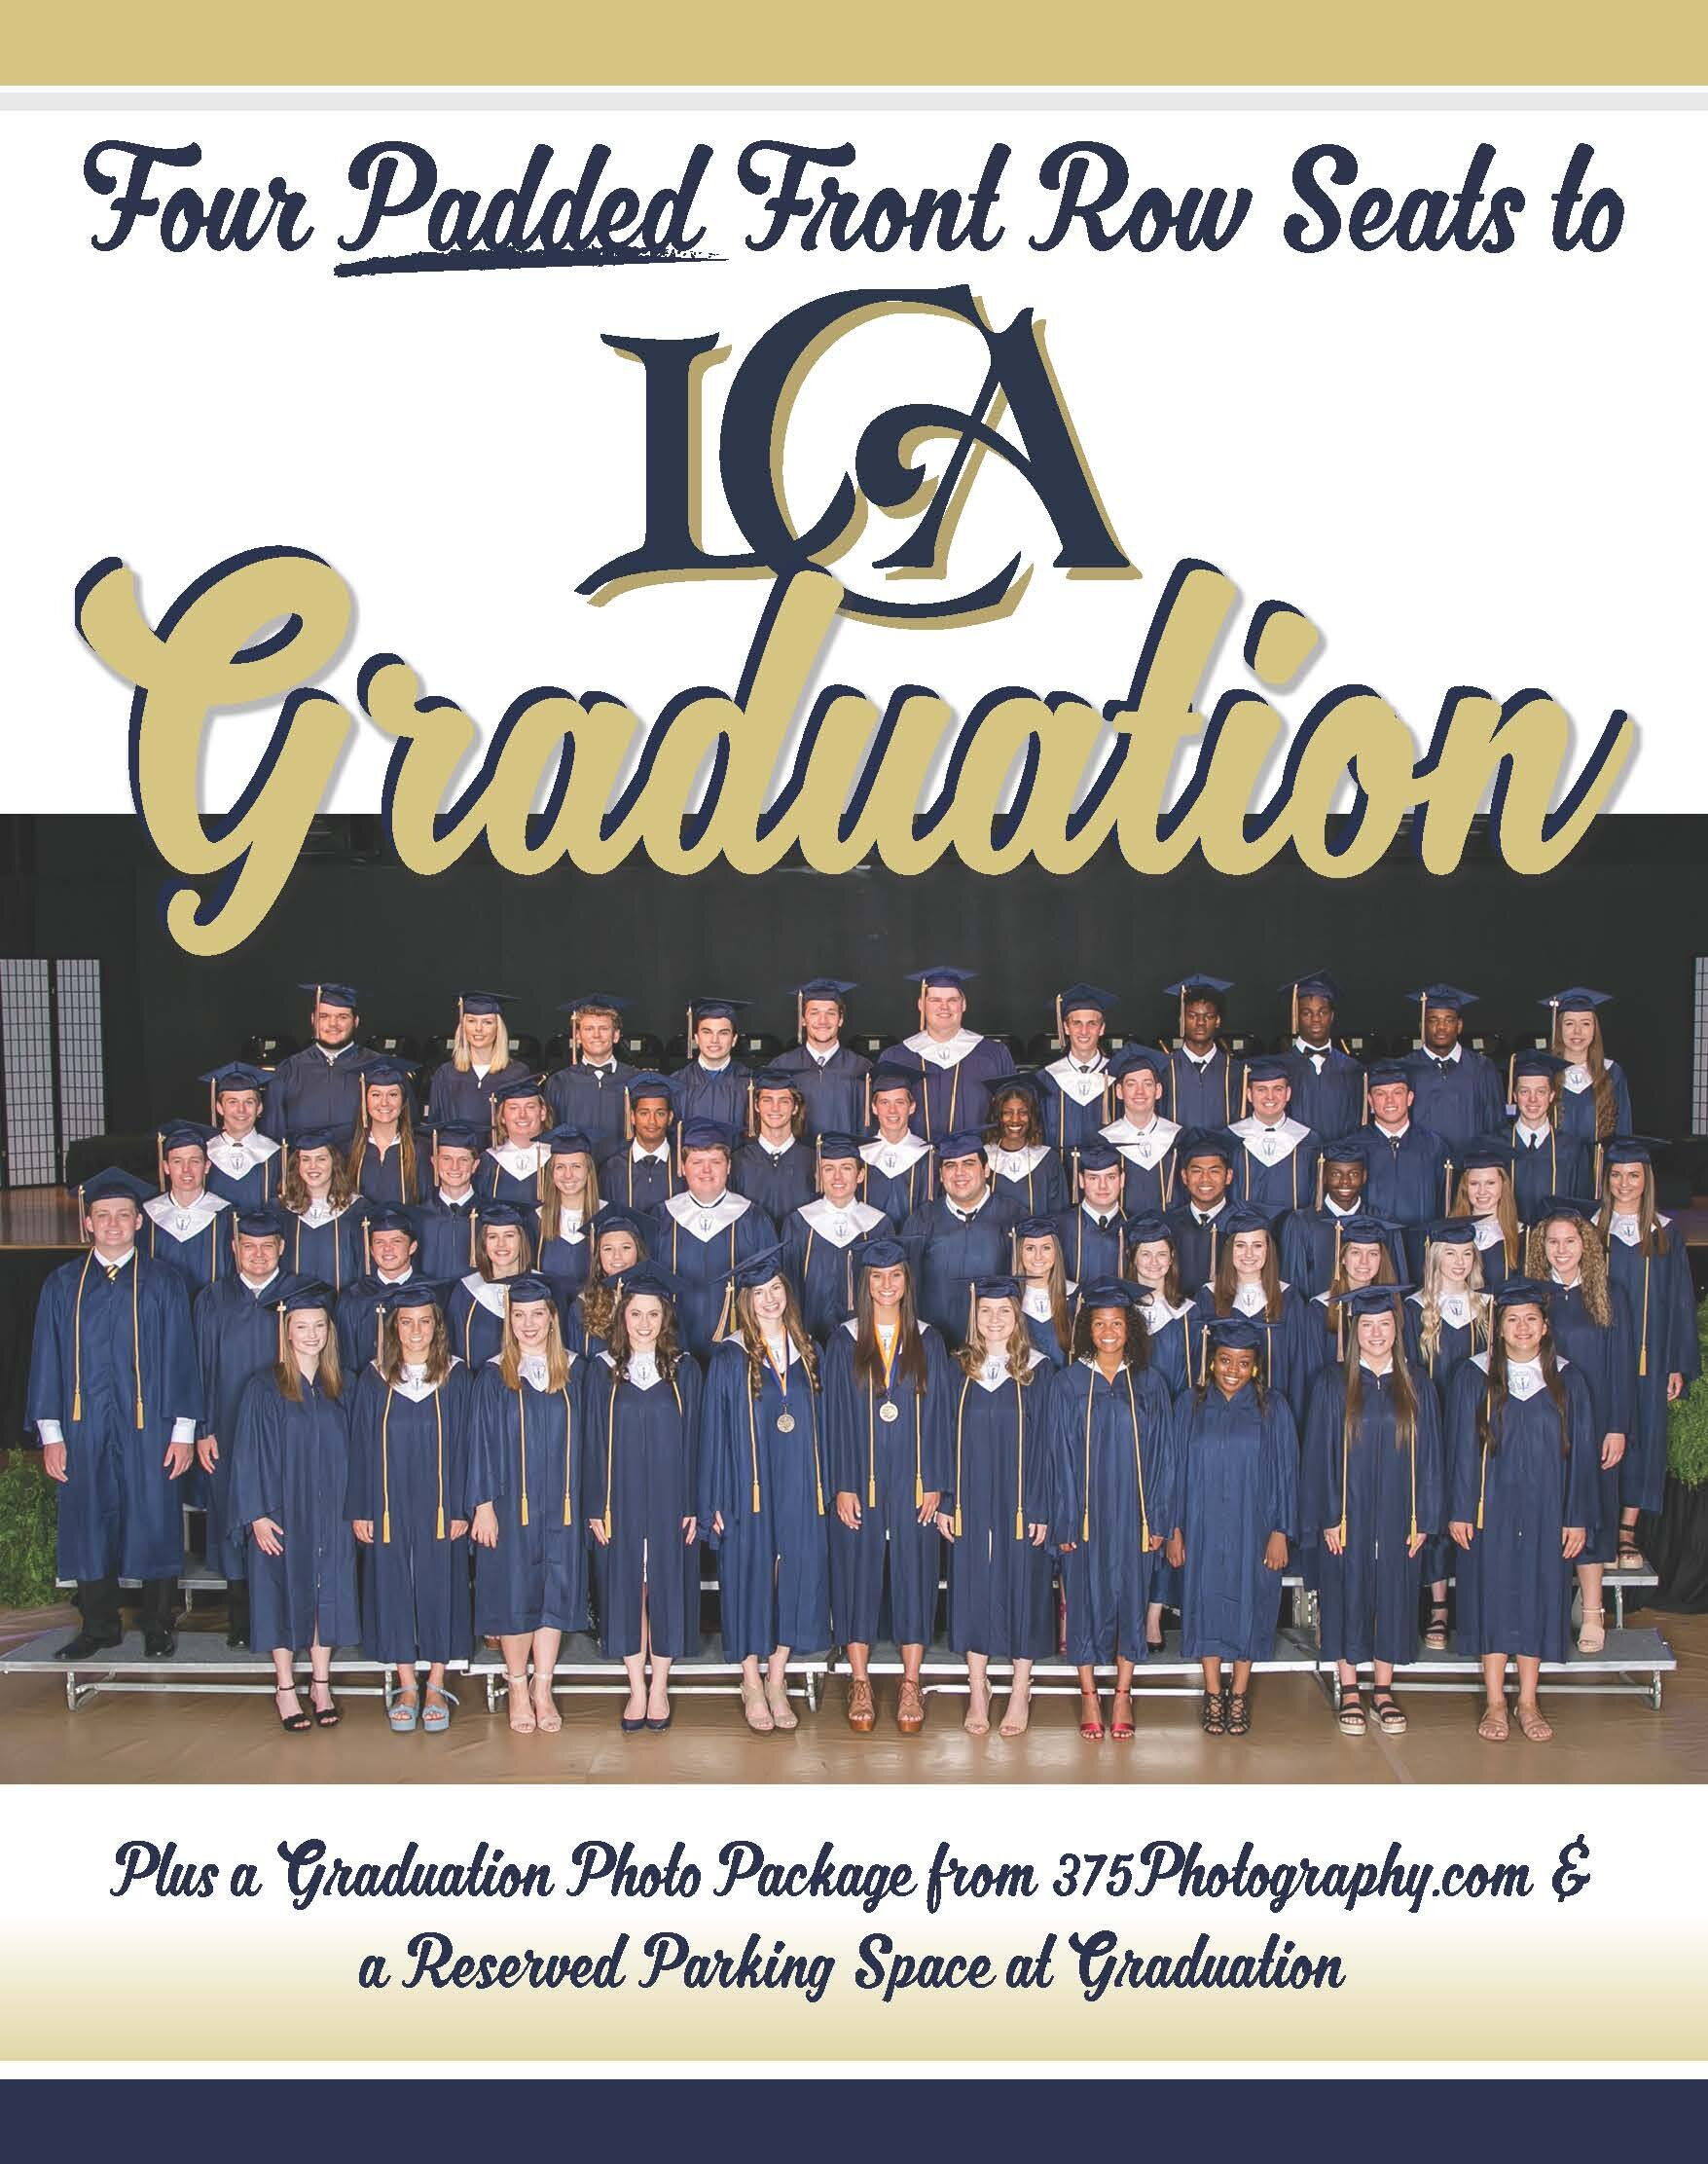 Graduation Premier FronRow Seats_with Photo_and parking_7x9_2019.jpg